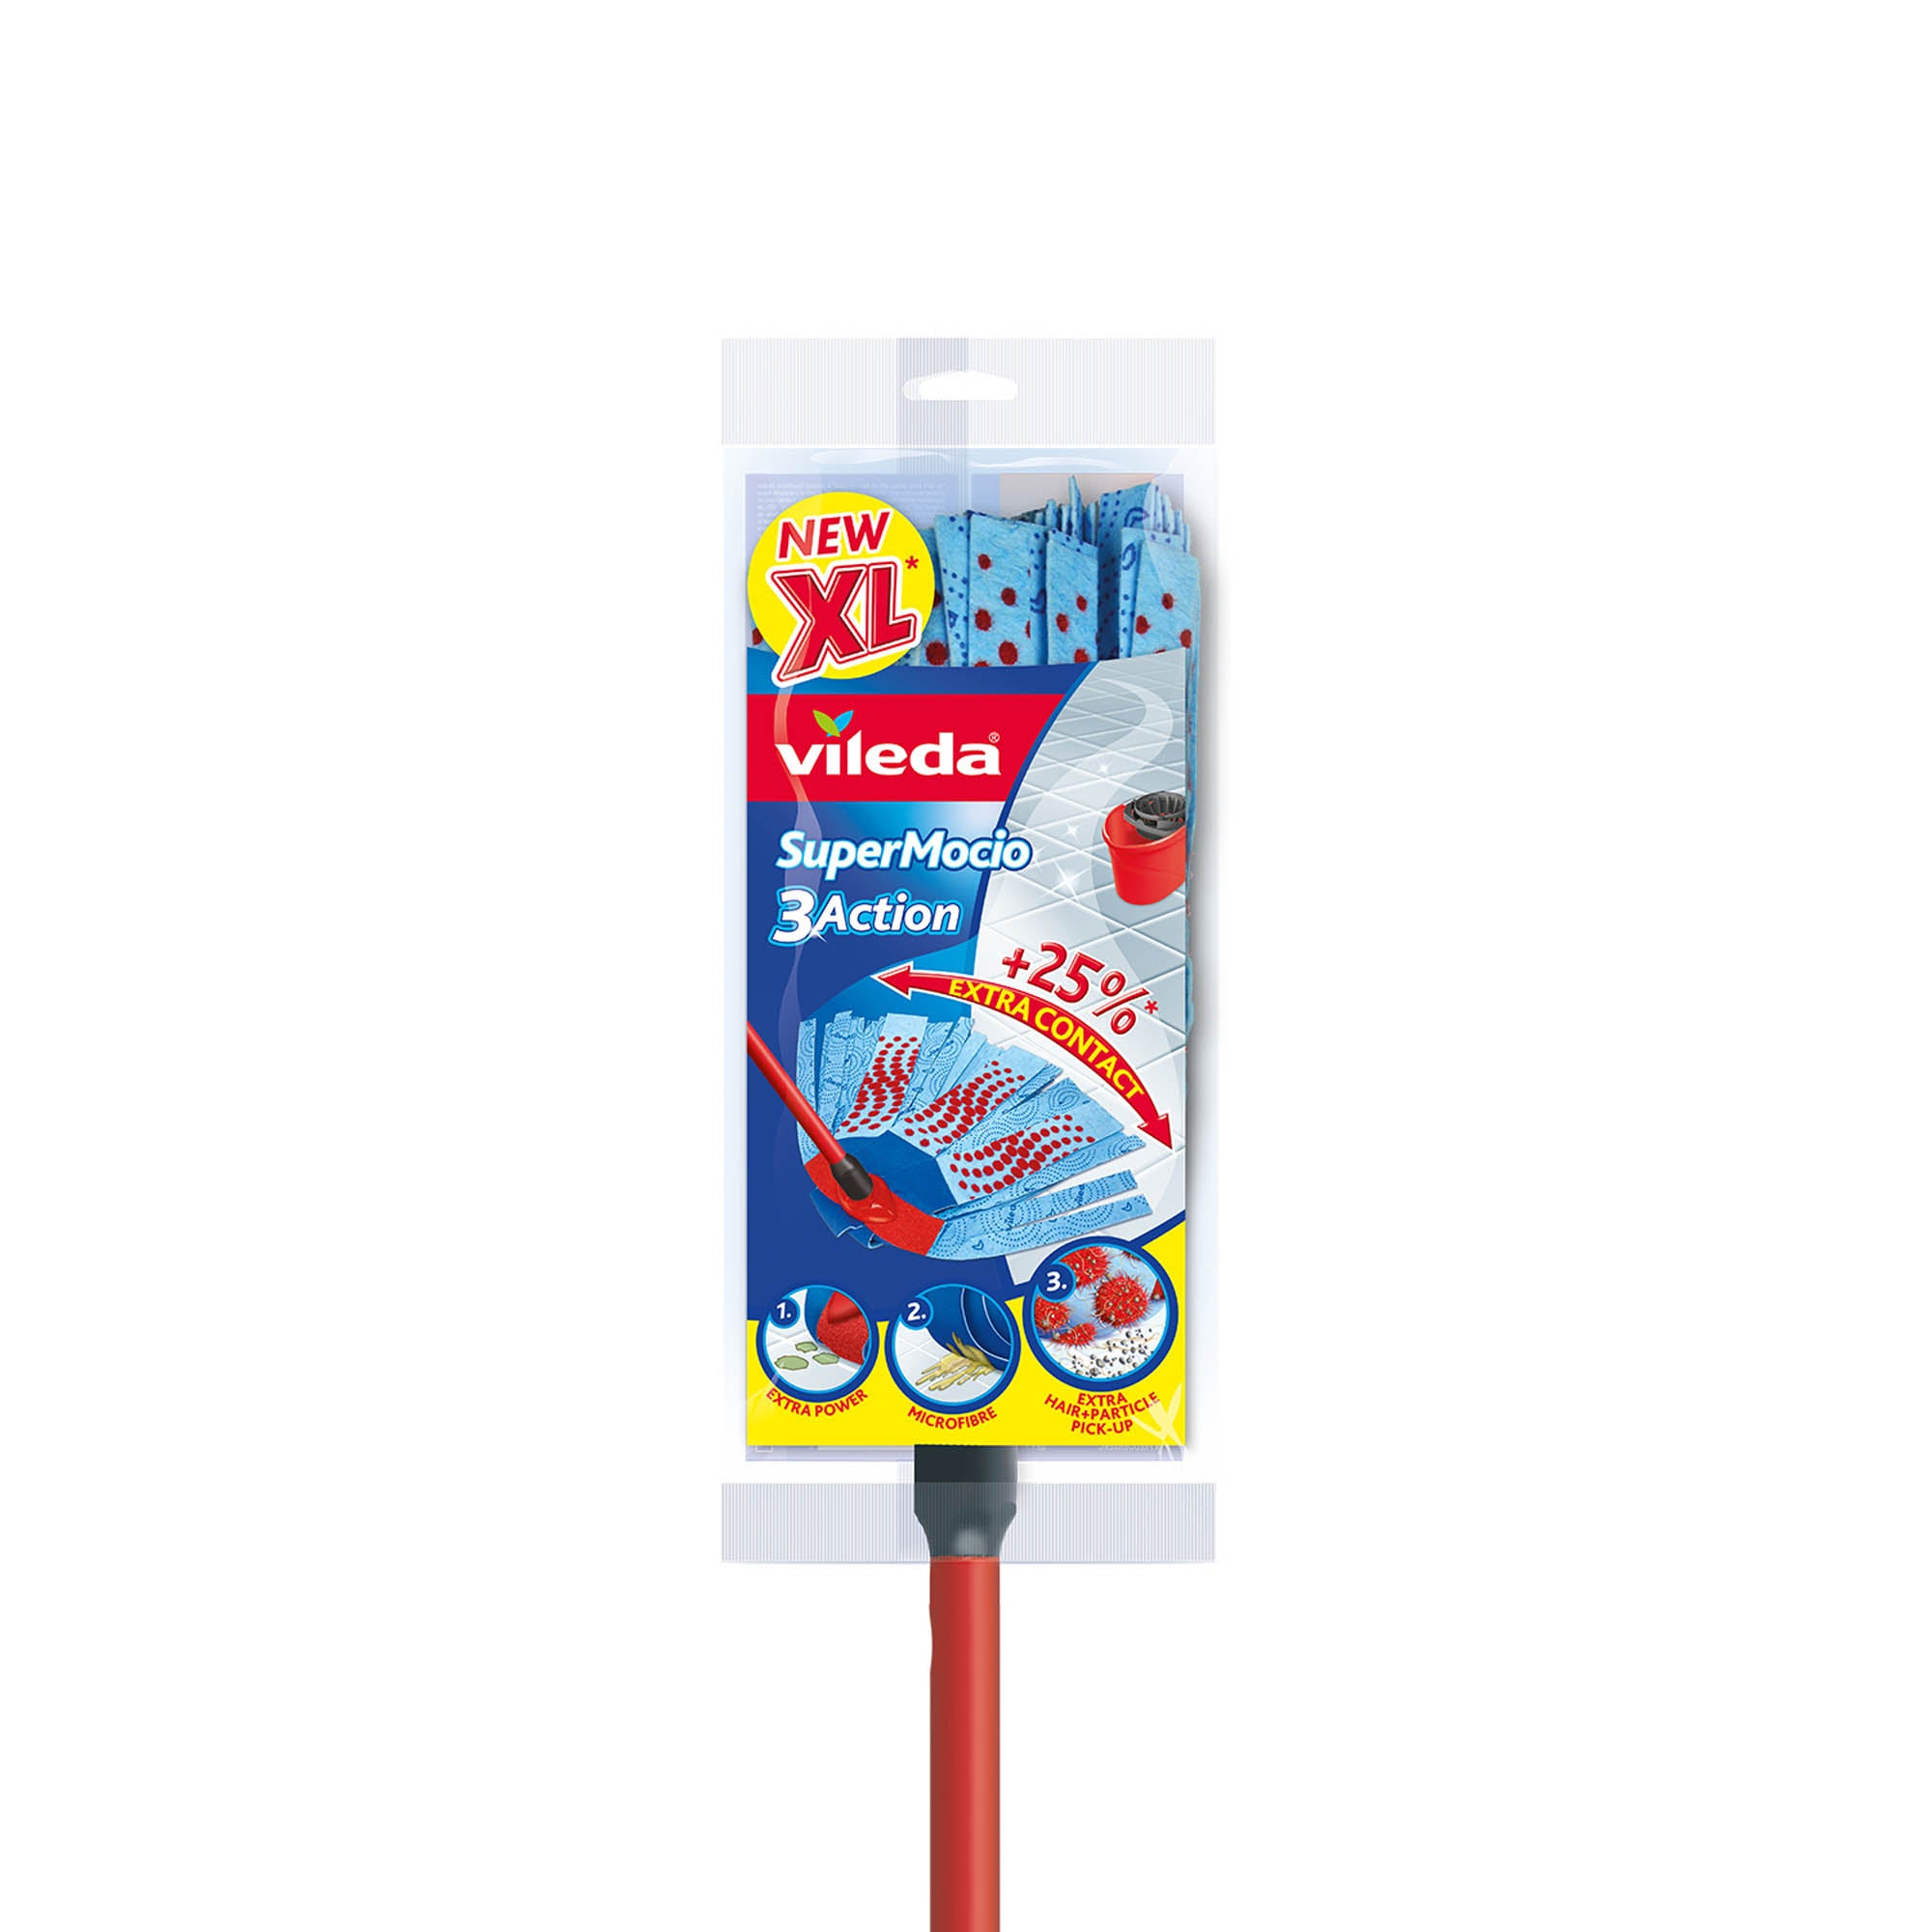 Vileda Super Mocio 3 Action Mop